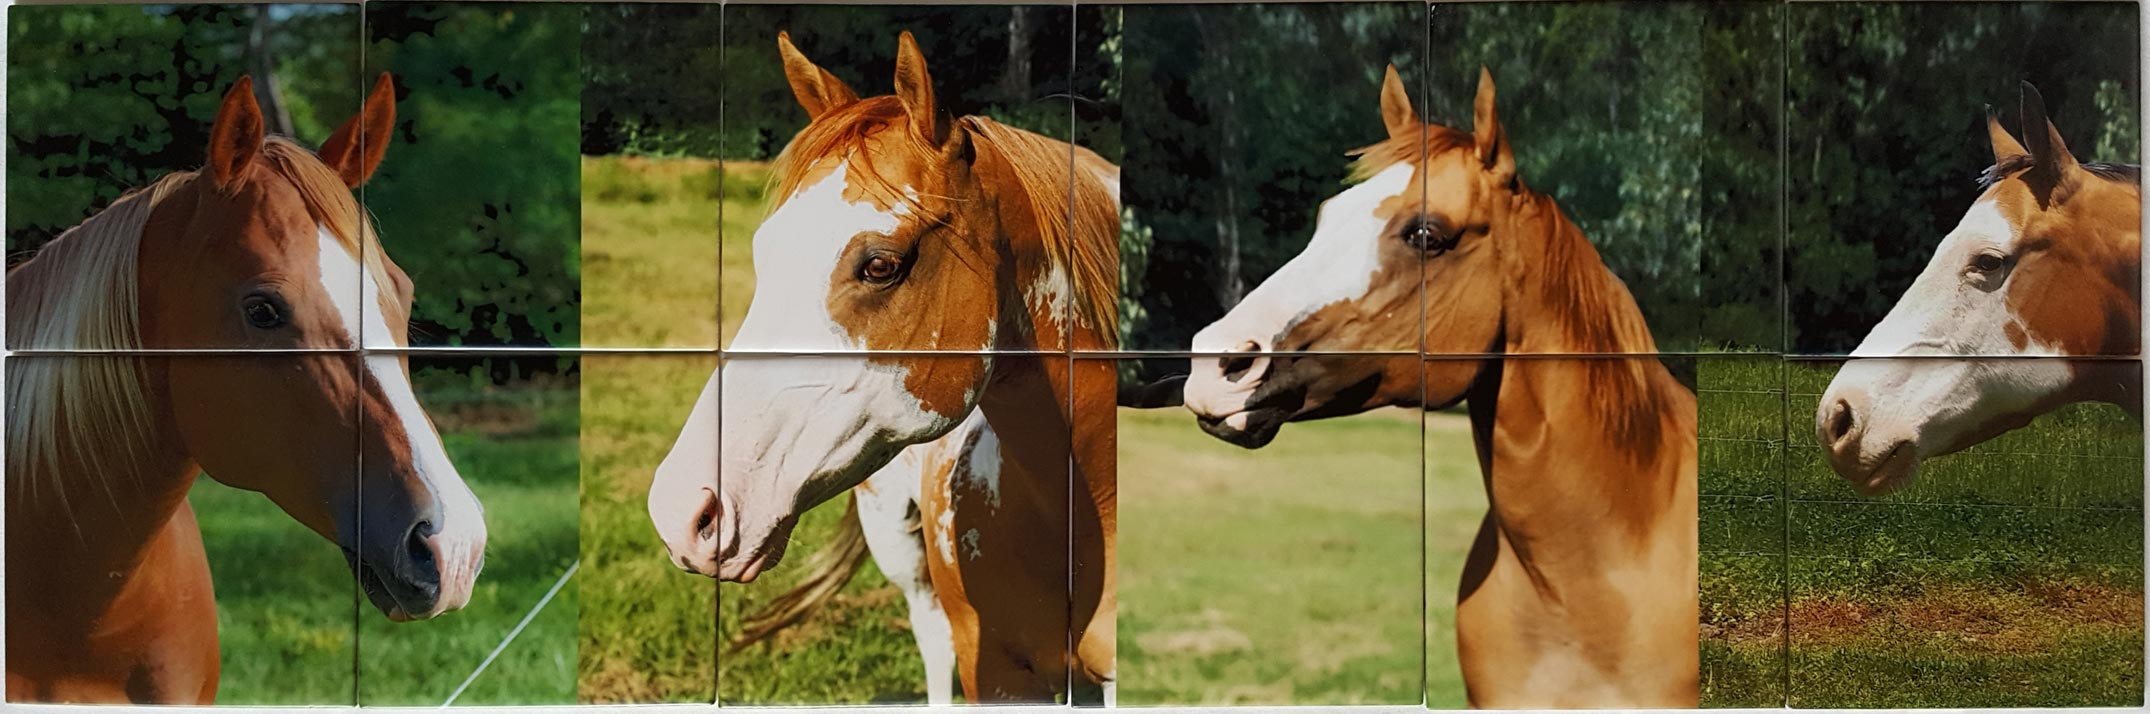 Four Horses Tile Picture Mural Backsplash